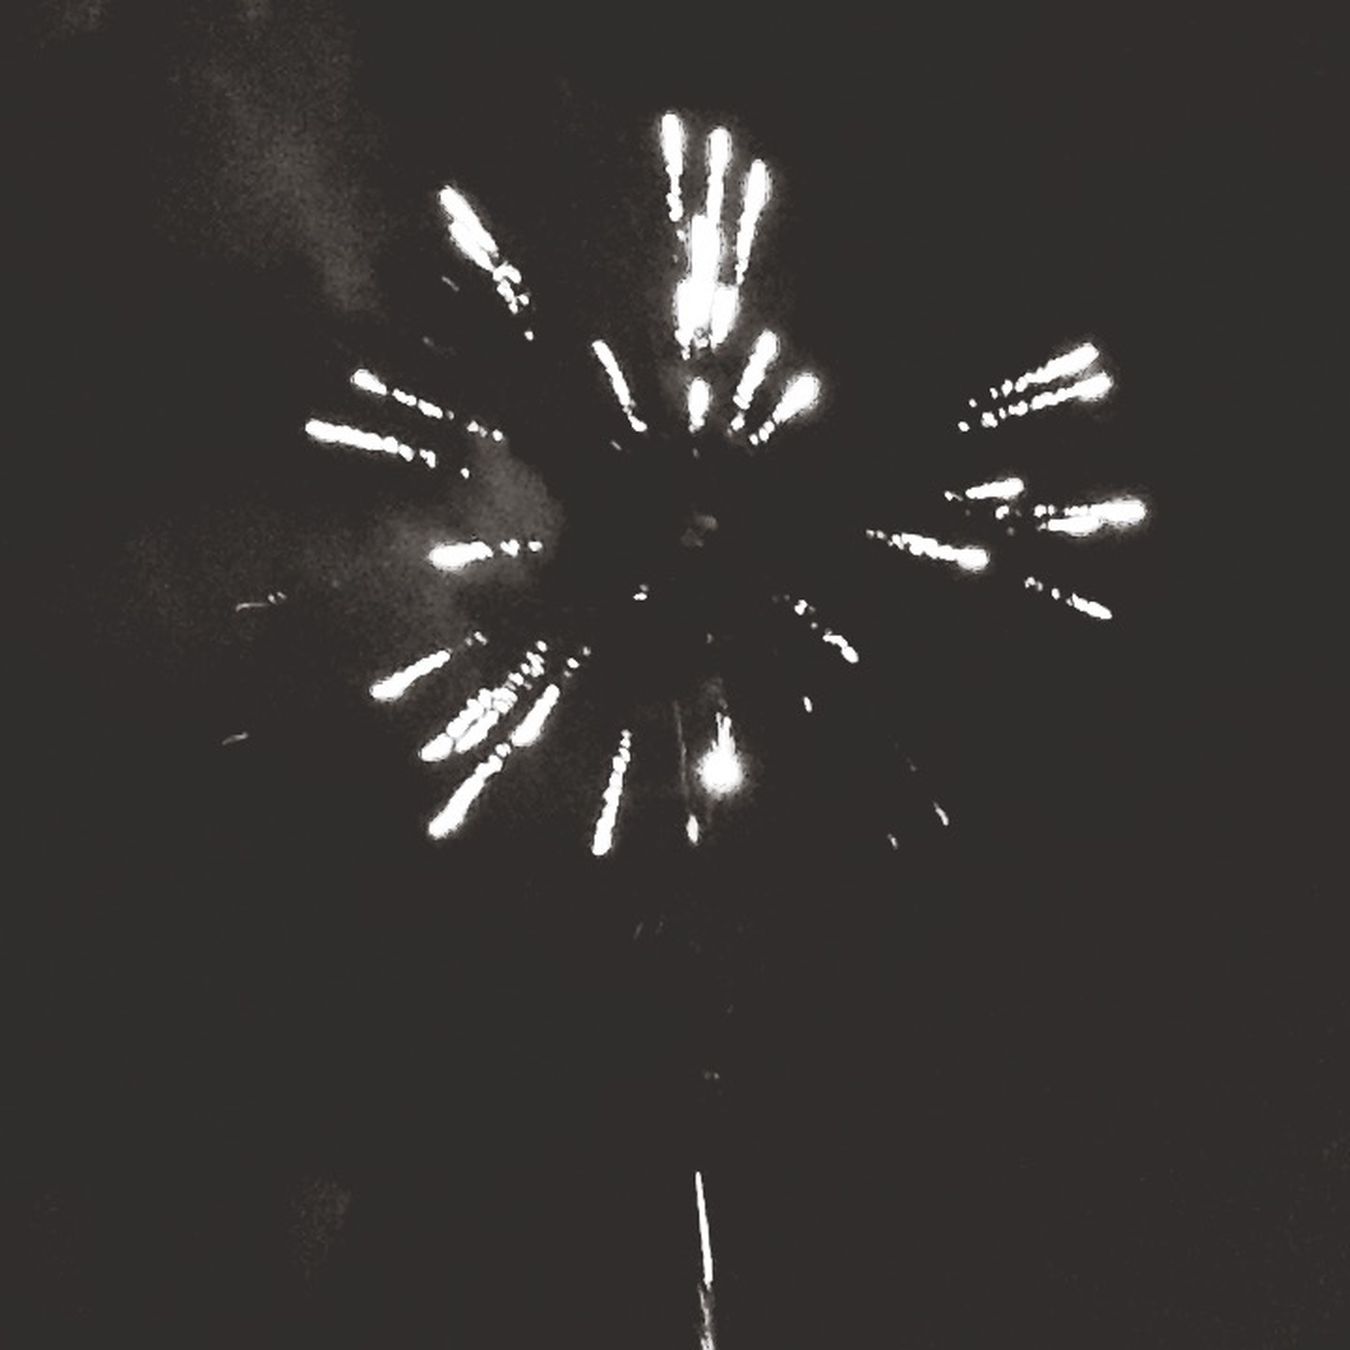 Fireworks Black & White POP! BOOM! WOW